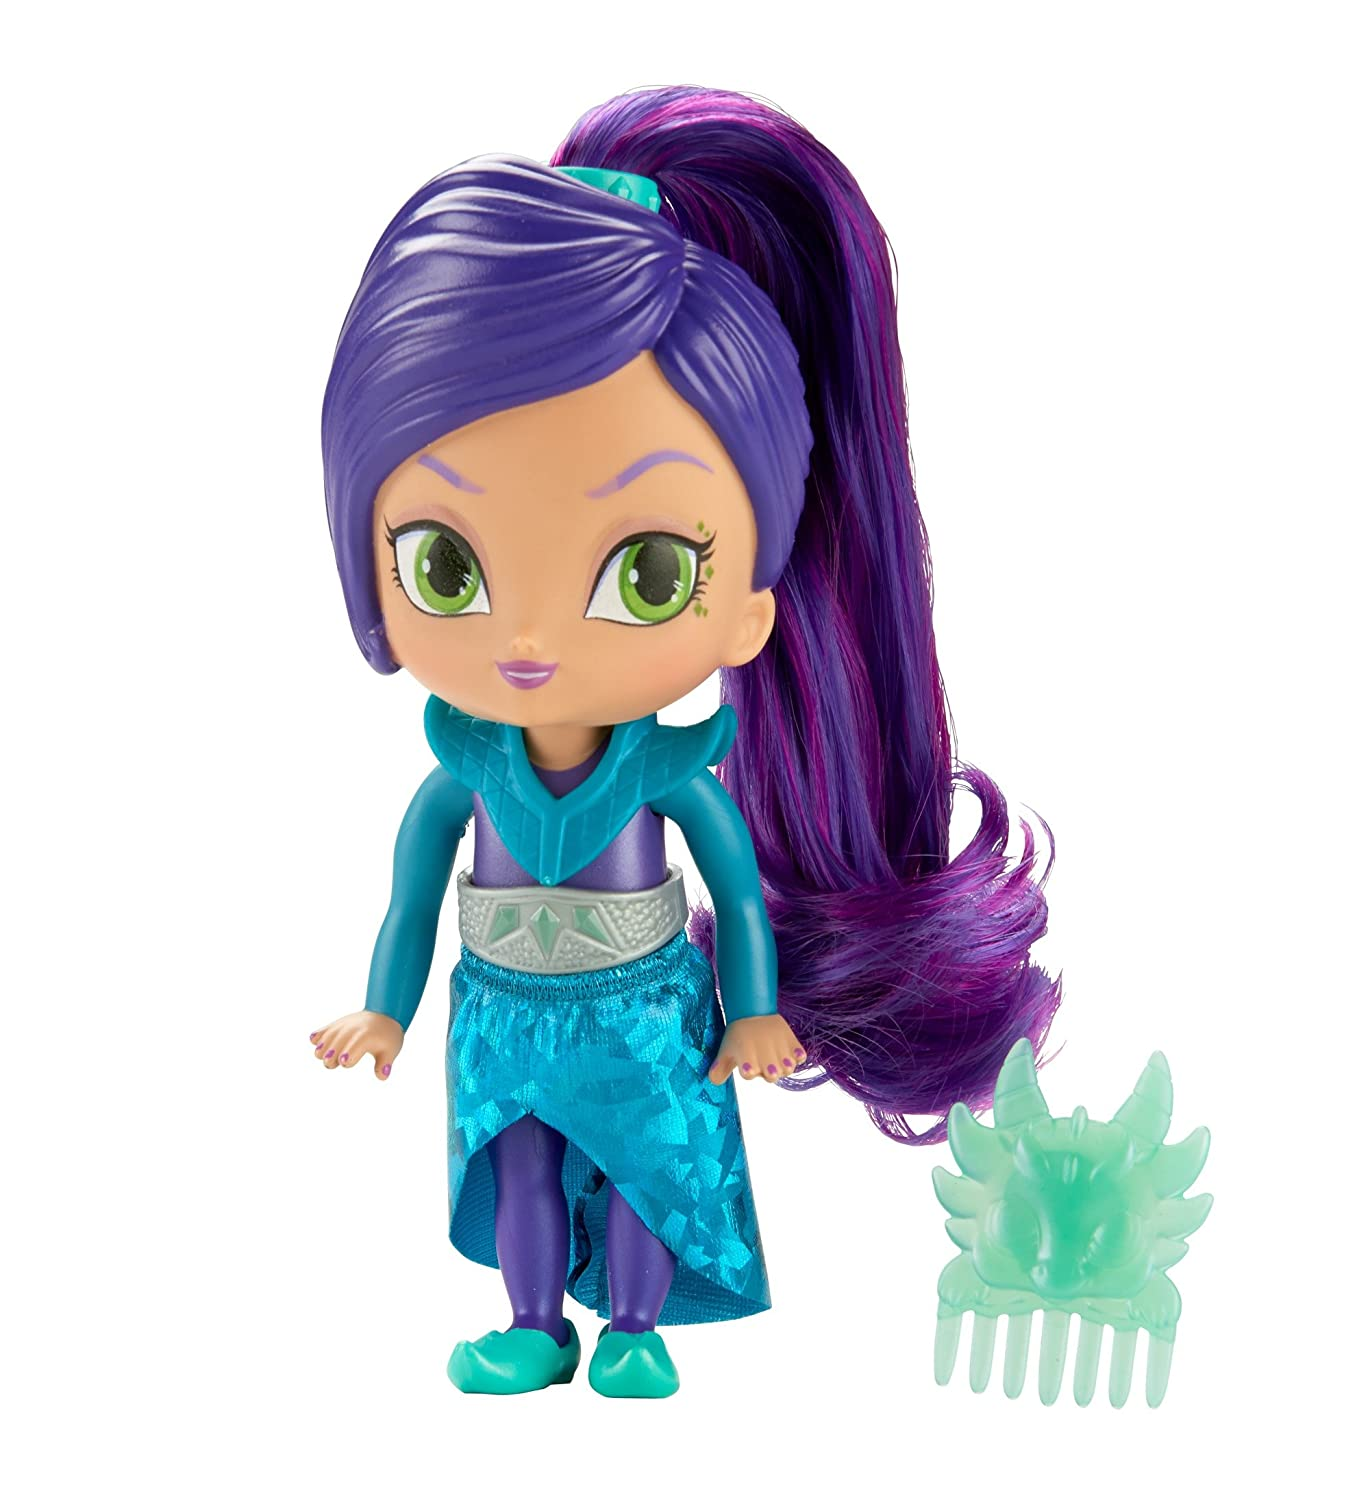 Fisher-Price Nickelodeon Shimmer & Shine, Zeta Fisher Price DYV95